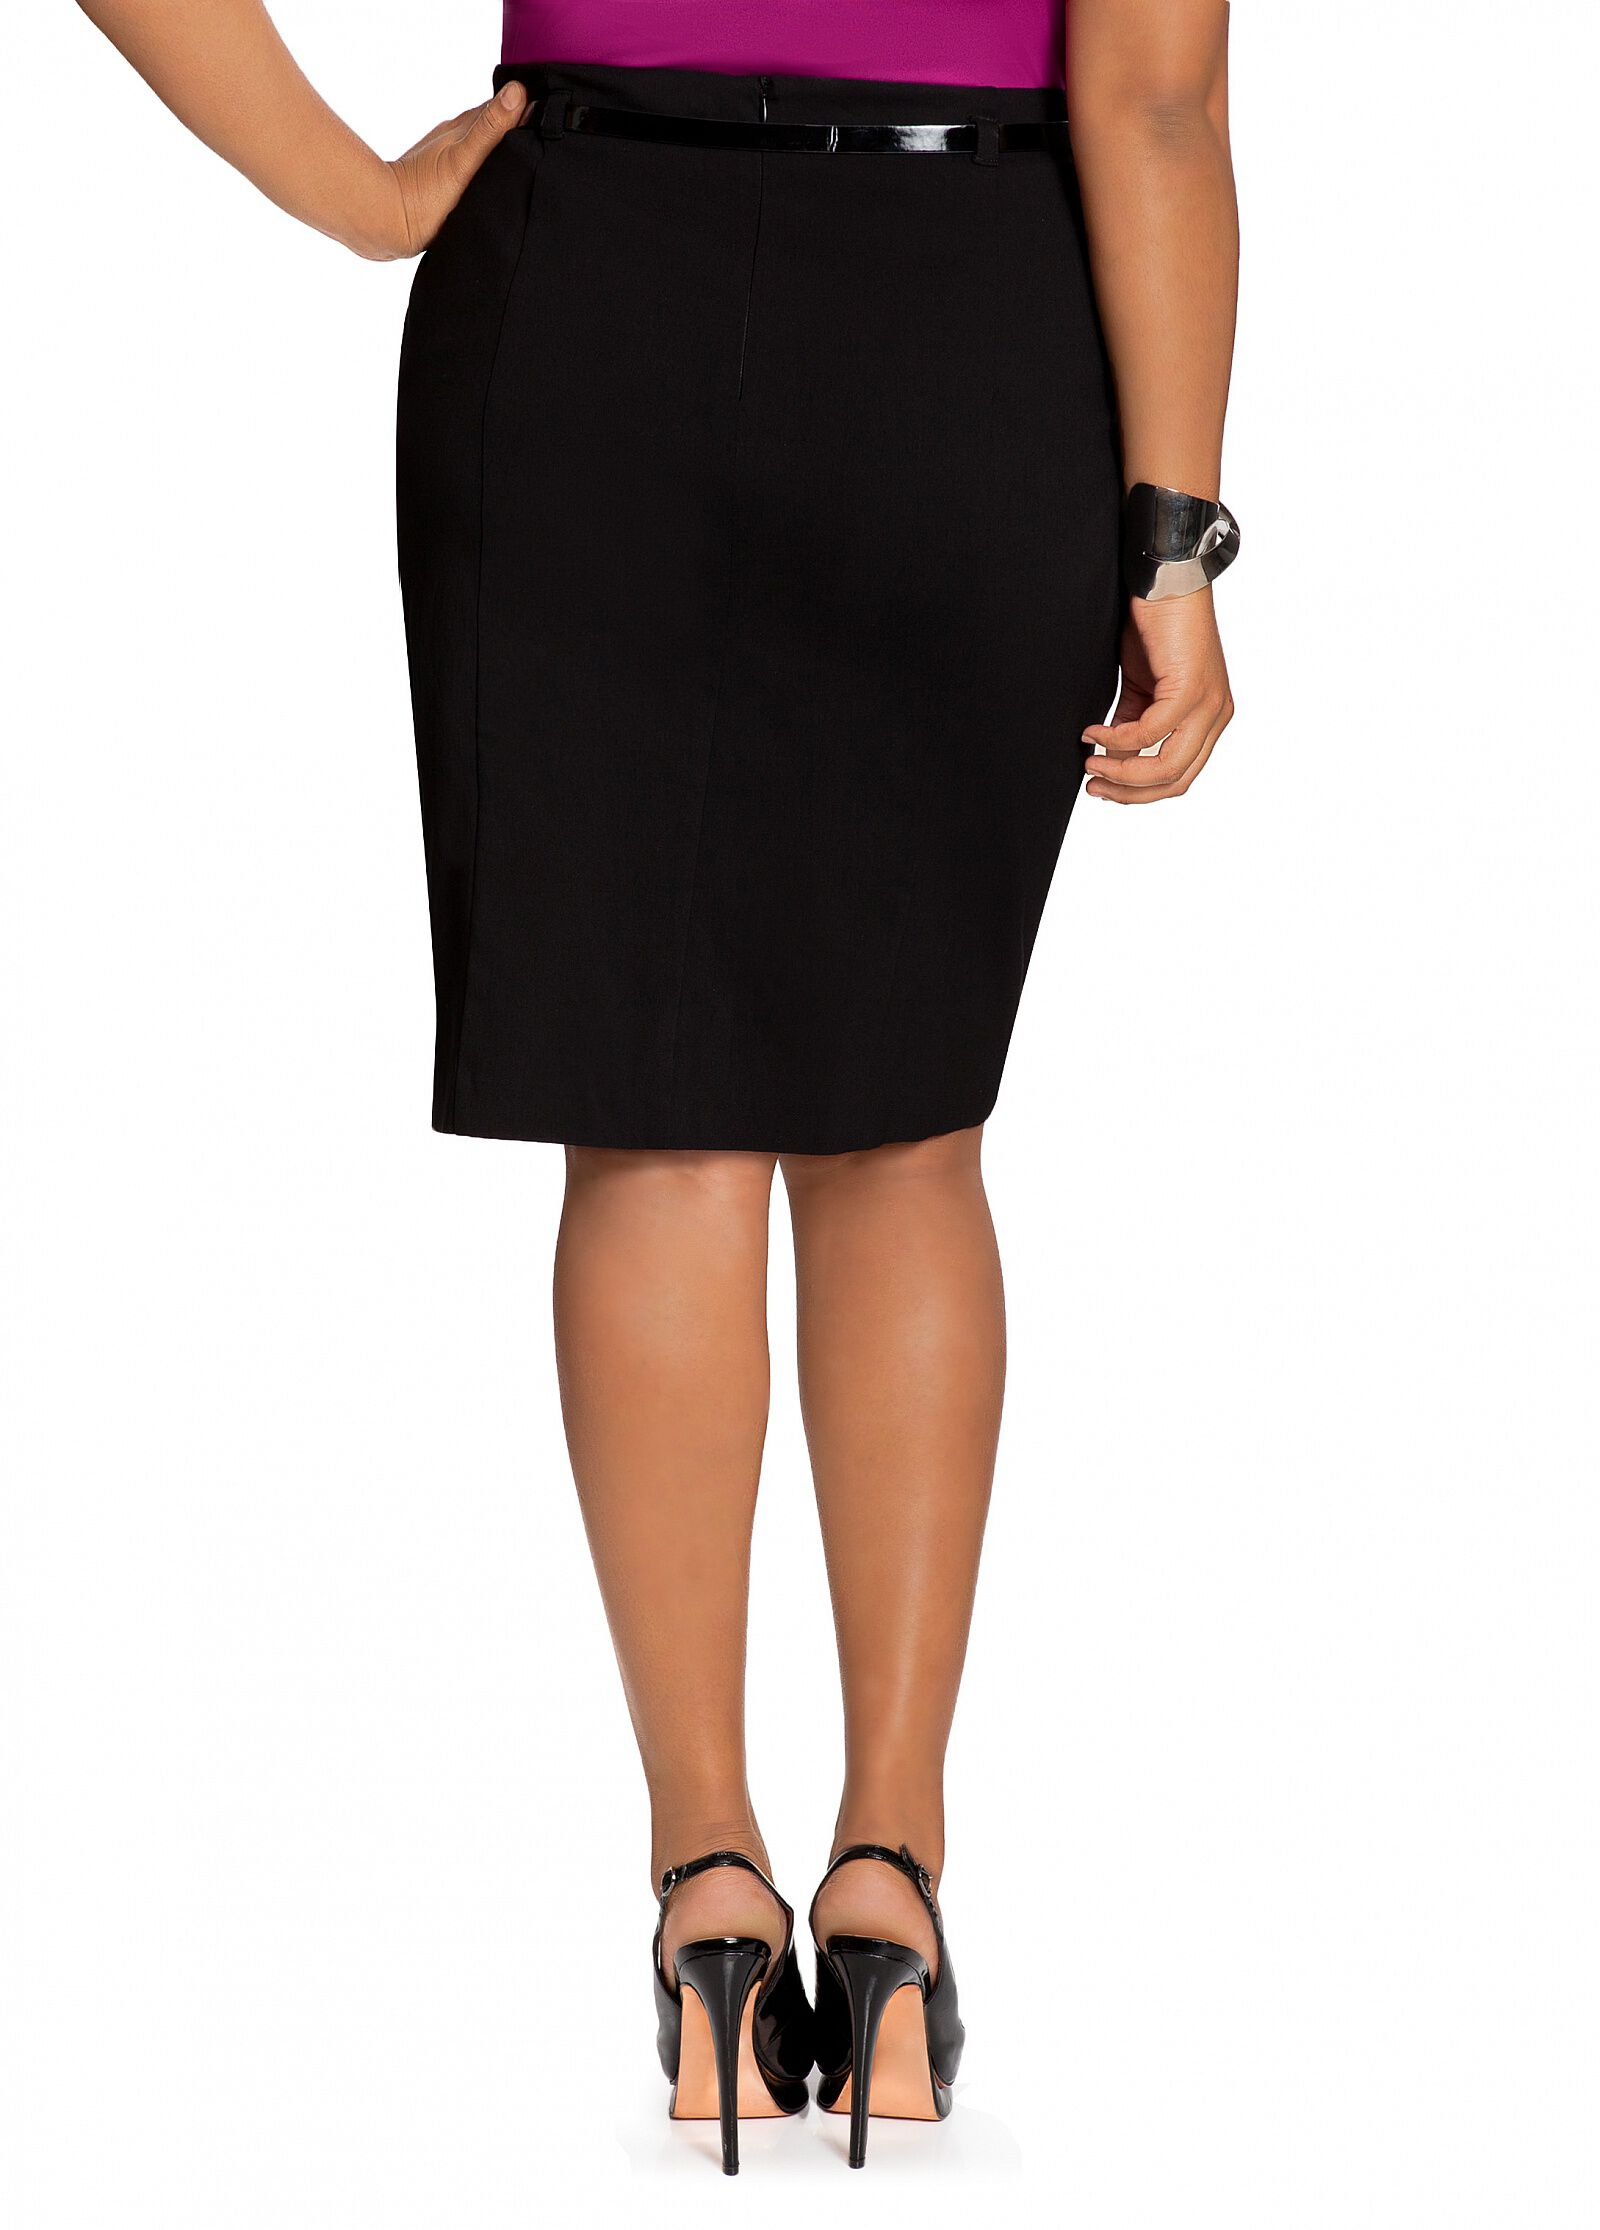 Millennium Pencil Skirt